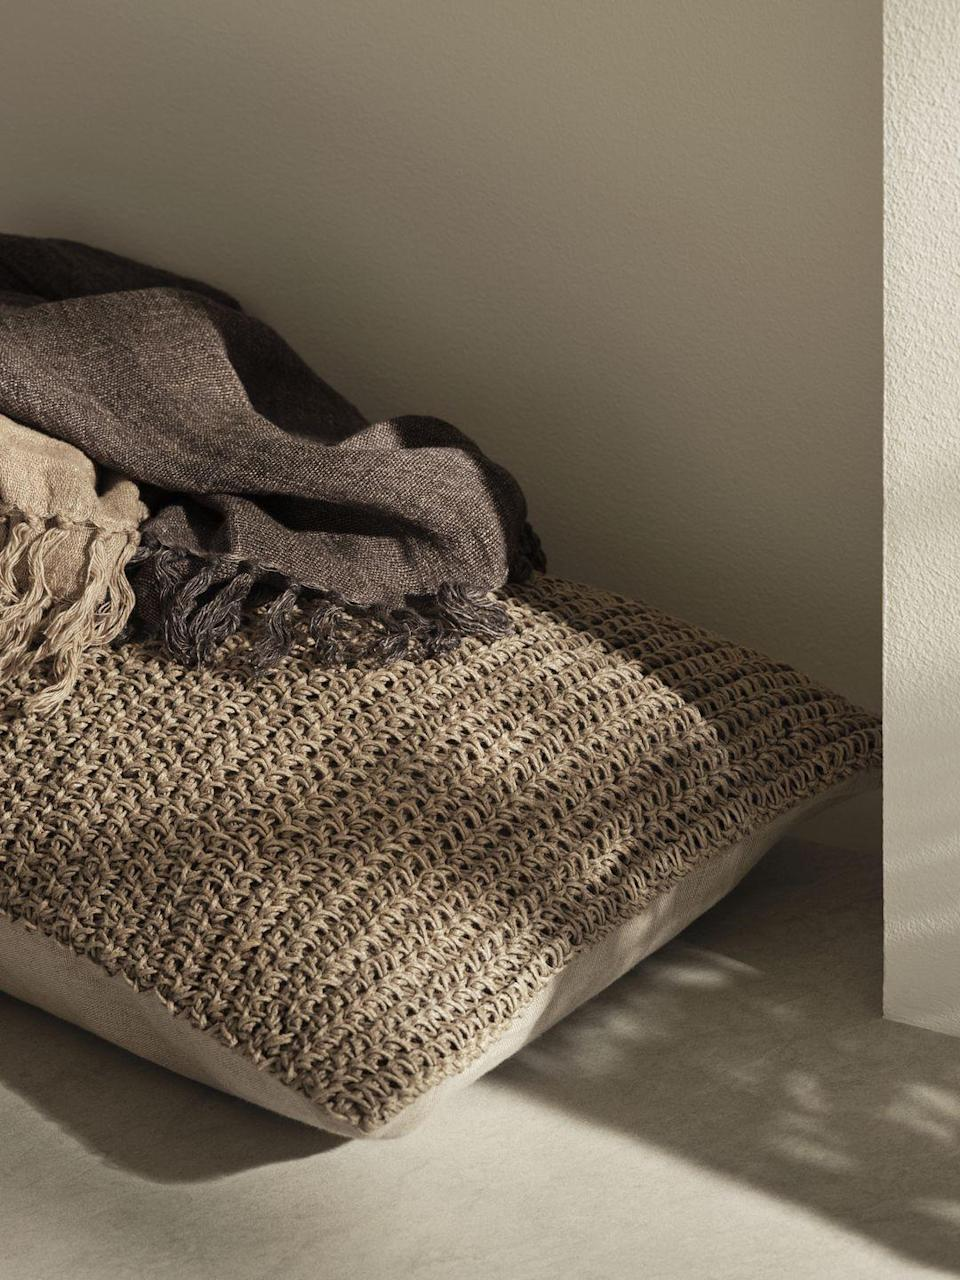 """<p>'For the first time we introduce cushion covers made with Himalayan nettle,' add H&M Home. </p><p>'The plant grows wildly in Nepal, where the cultivation into fibres provides a livelihood to the local villagers. Due to differences in the shades, the yarn has a natural variation, as the nettle can vary from season to season and between areas.'</p><p><a class=""""link rapid-noclick-resp"""" href=""""https://go.redirectingat.com?id=127X1599956&url=https%3A%2F%2Fwww2.hm.com%2Fen_gb%2Fhome.html&sref=https%3A%2F%2Fwww.housebeautiful.com%2Fuk%2Flifestyle%2Fshopping%2Fg36671419%2Fhandm-home-love-of-craft-collection-artisans%2F"""" rel=""""nofollow noopener"""" target=""""_blank"""" data-ylk=""""slk:COMING SOON"""">COMING SOON</a></p>"""